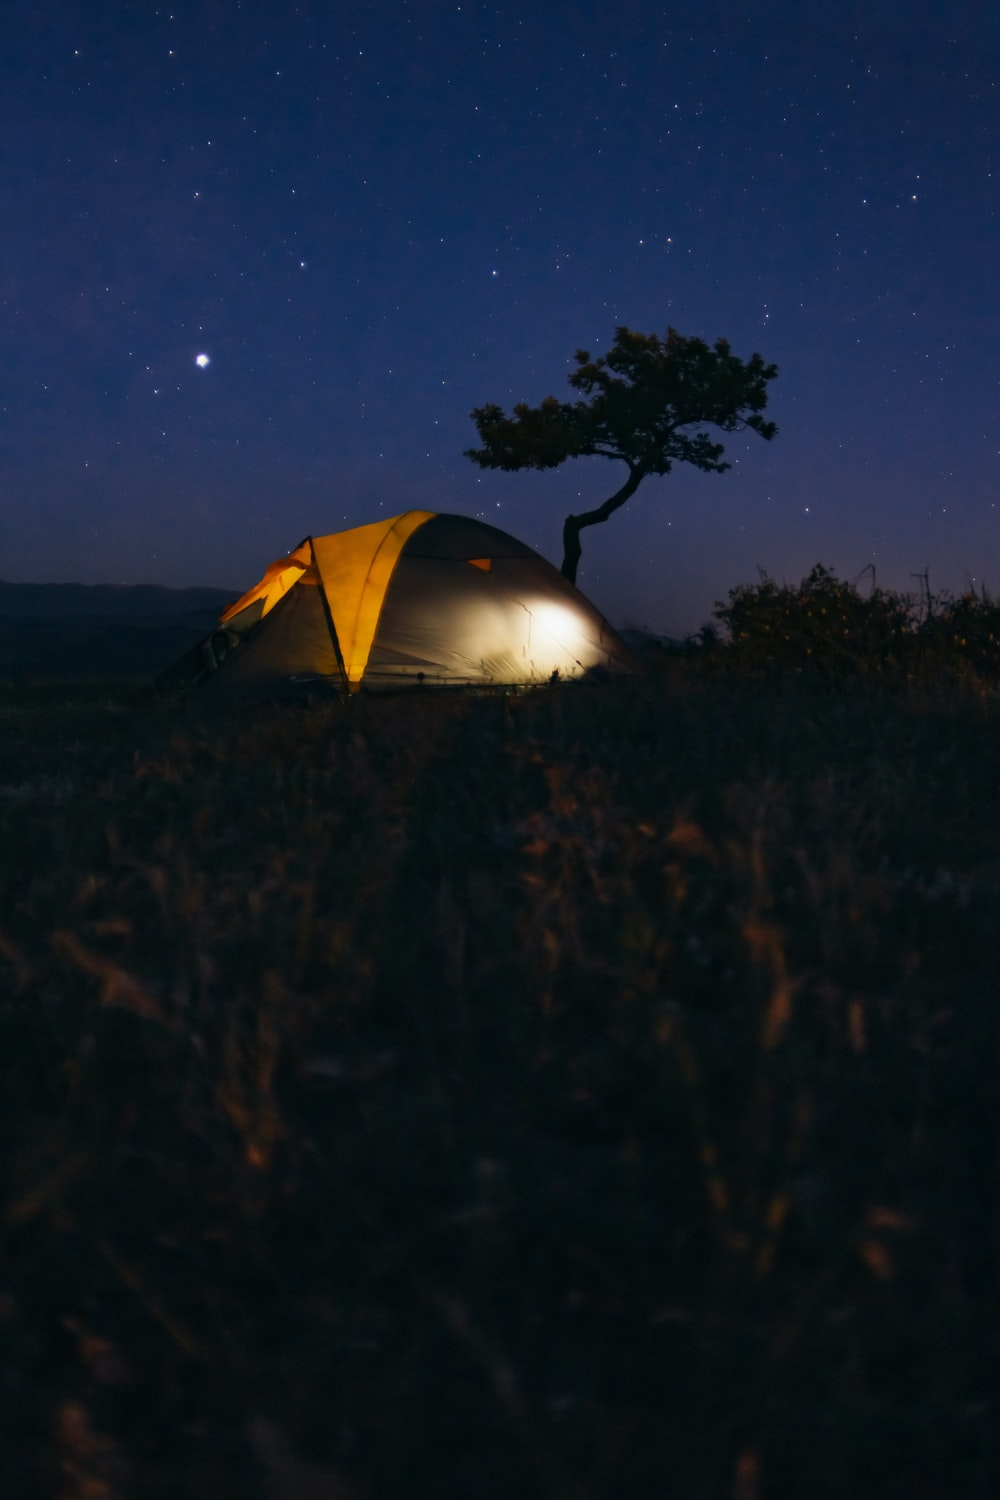 gray and yellow camping tent in the middle of grass field camping during nightime